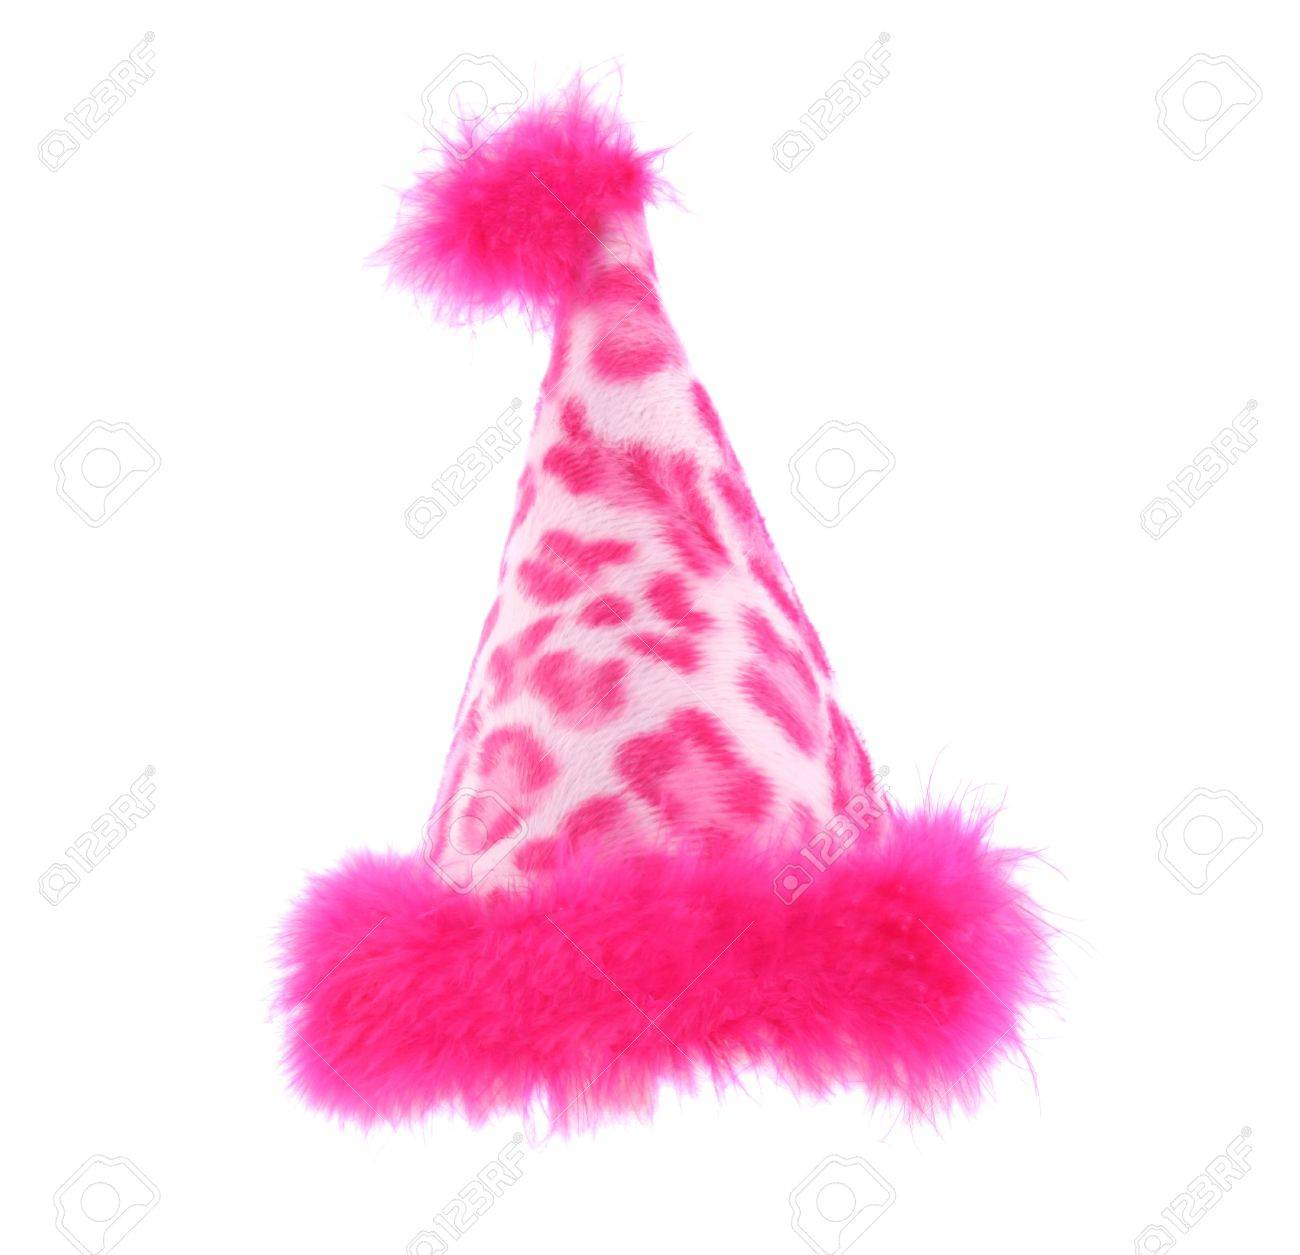 Party hat that is perfect for a pet or person Stock Photo - 1349678